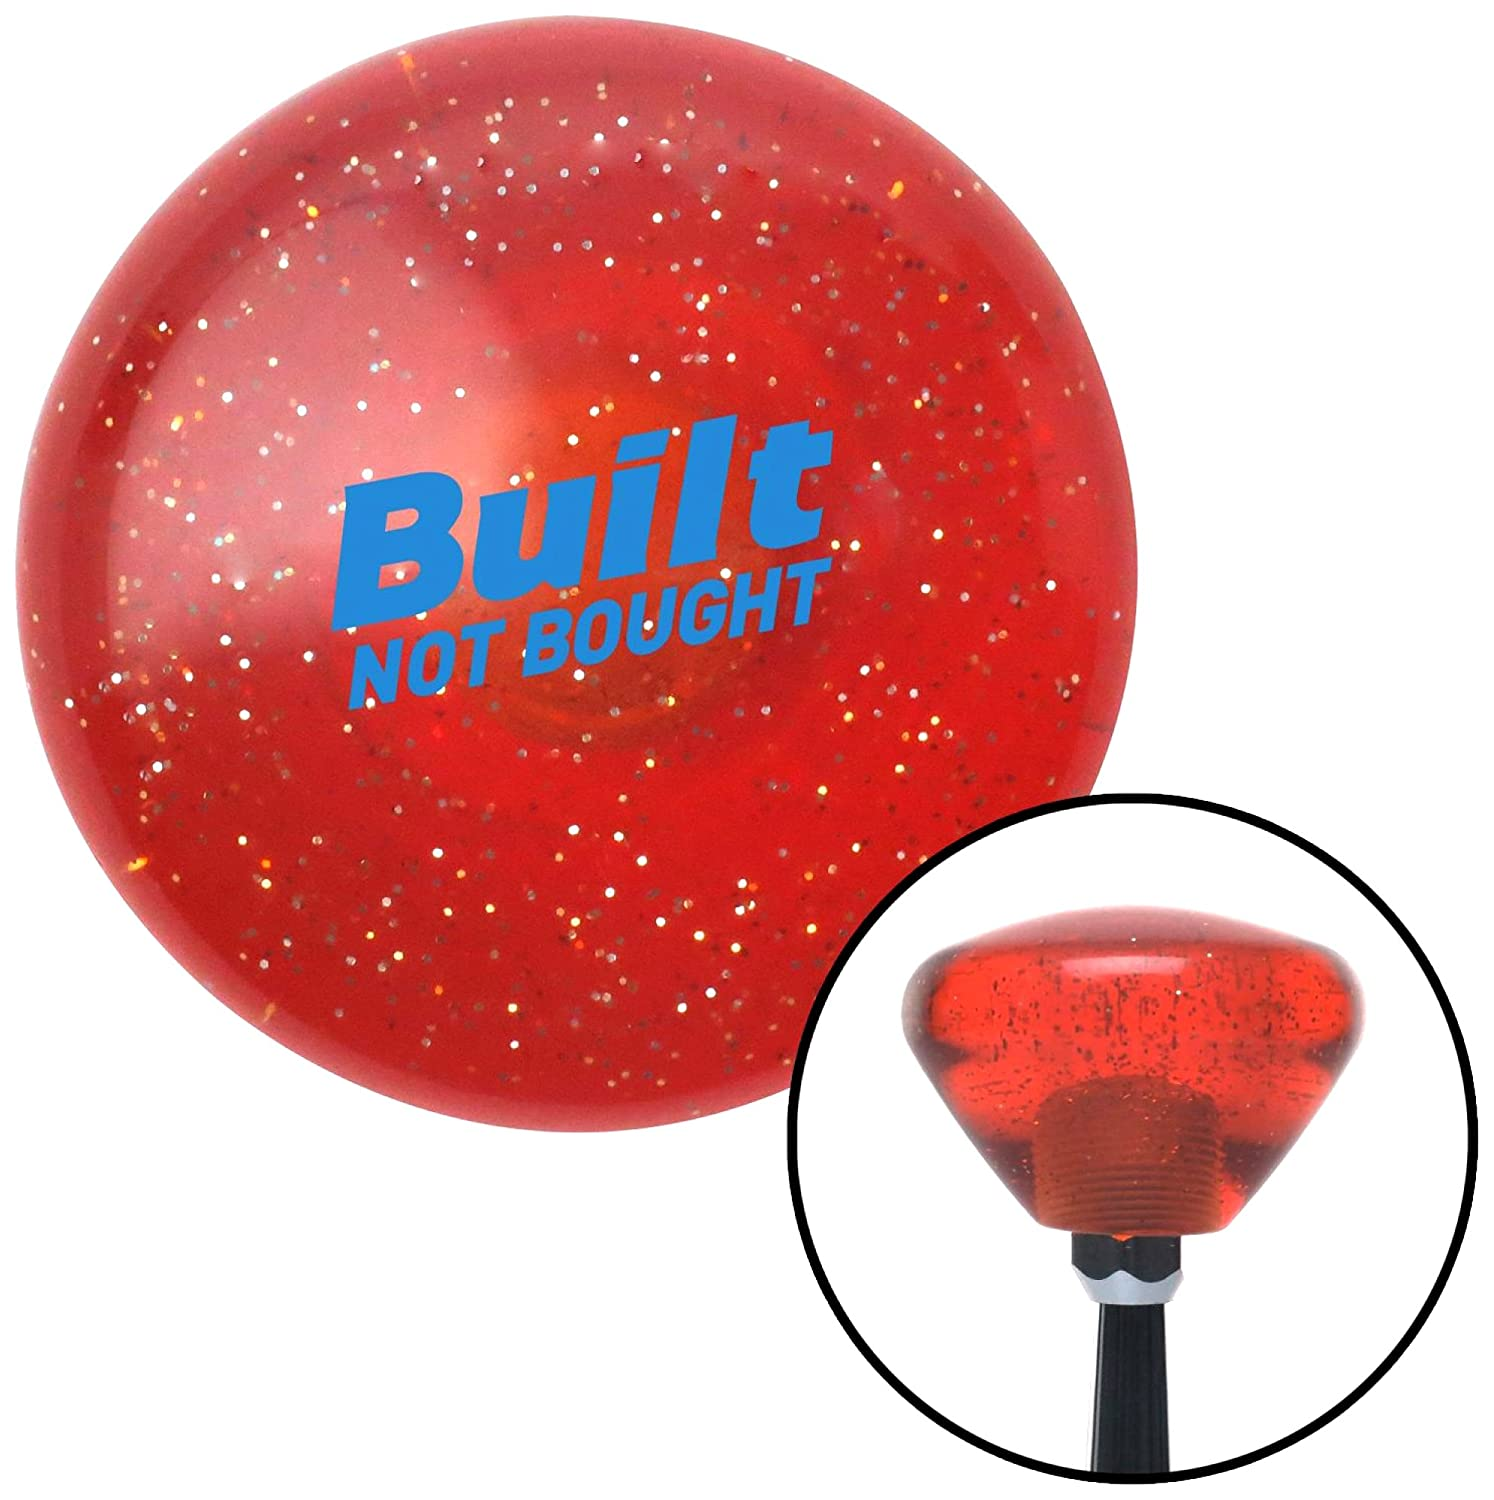 American Shifter 327704 Blue Built Not Bought Simple Orange Retro Metal Flake Shift Knob with M16 x 1.5 Insert